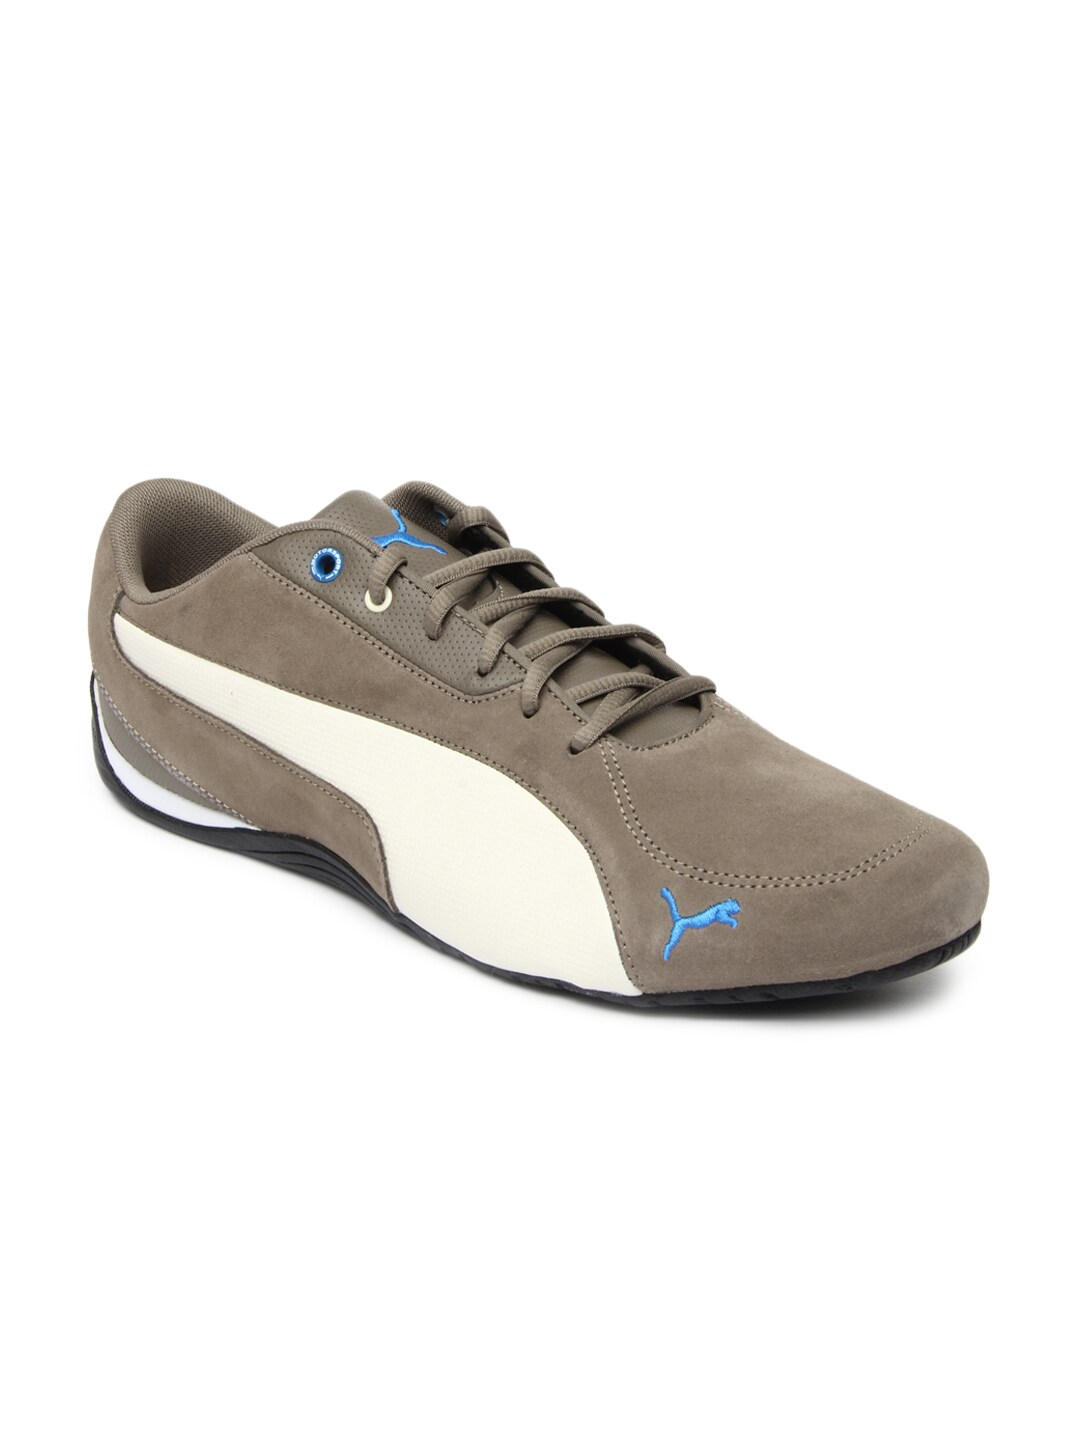 buy brown drift cat 5 s sports shoes 634